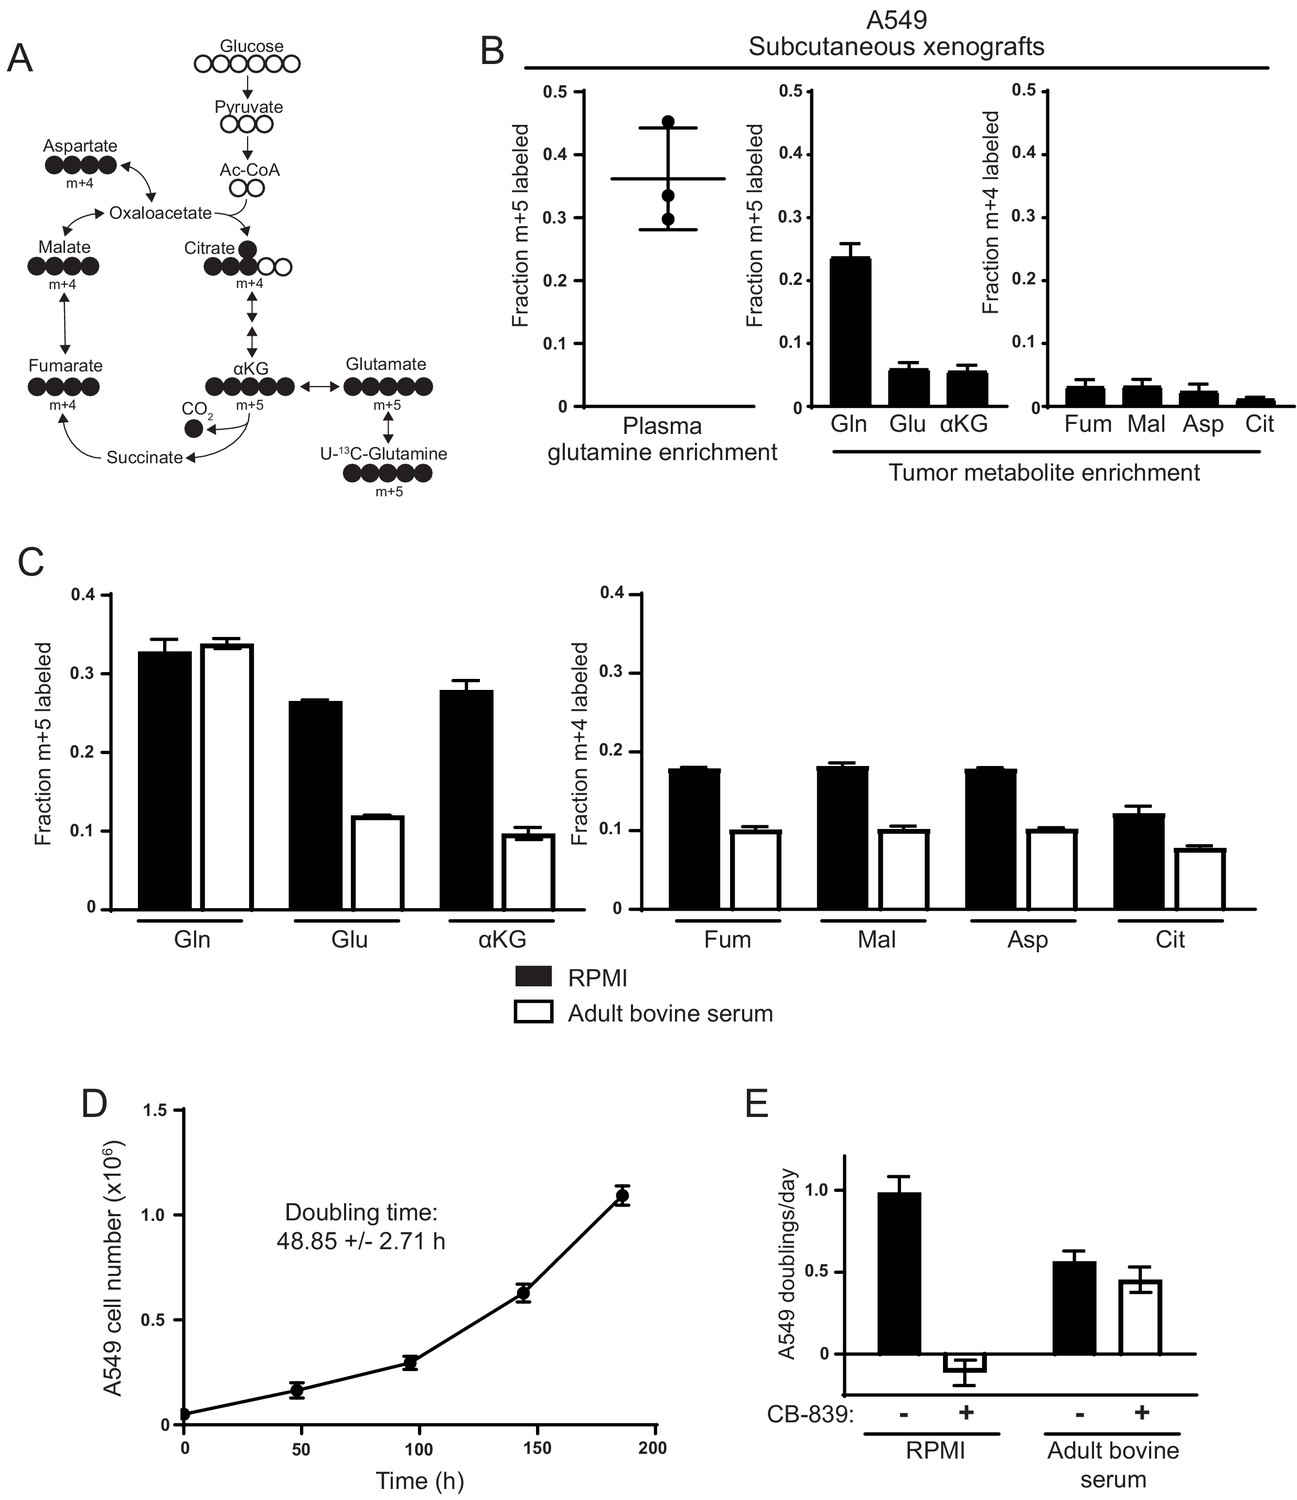 Environmental Cystine Drives Glutamine Anaplerosis And Sensitizes Besides Dish Work Rf Modulator On Wiring Diagram Decreased Use Of For Tca Cycle By A549 Cells In Tumors When Cultured Adult Bovine Serum Compared To Rpmi